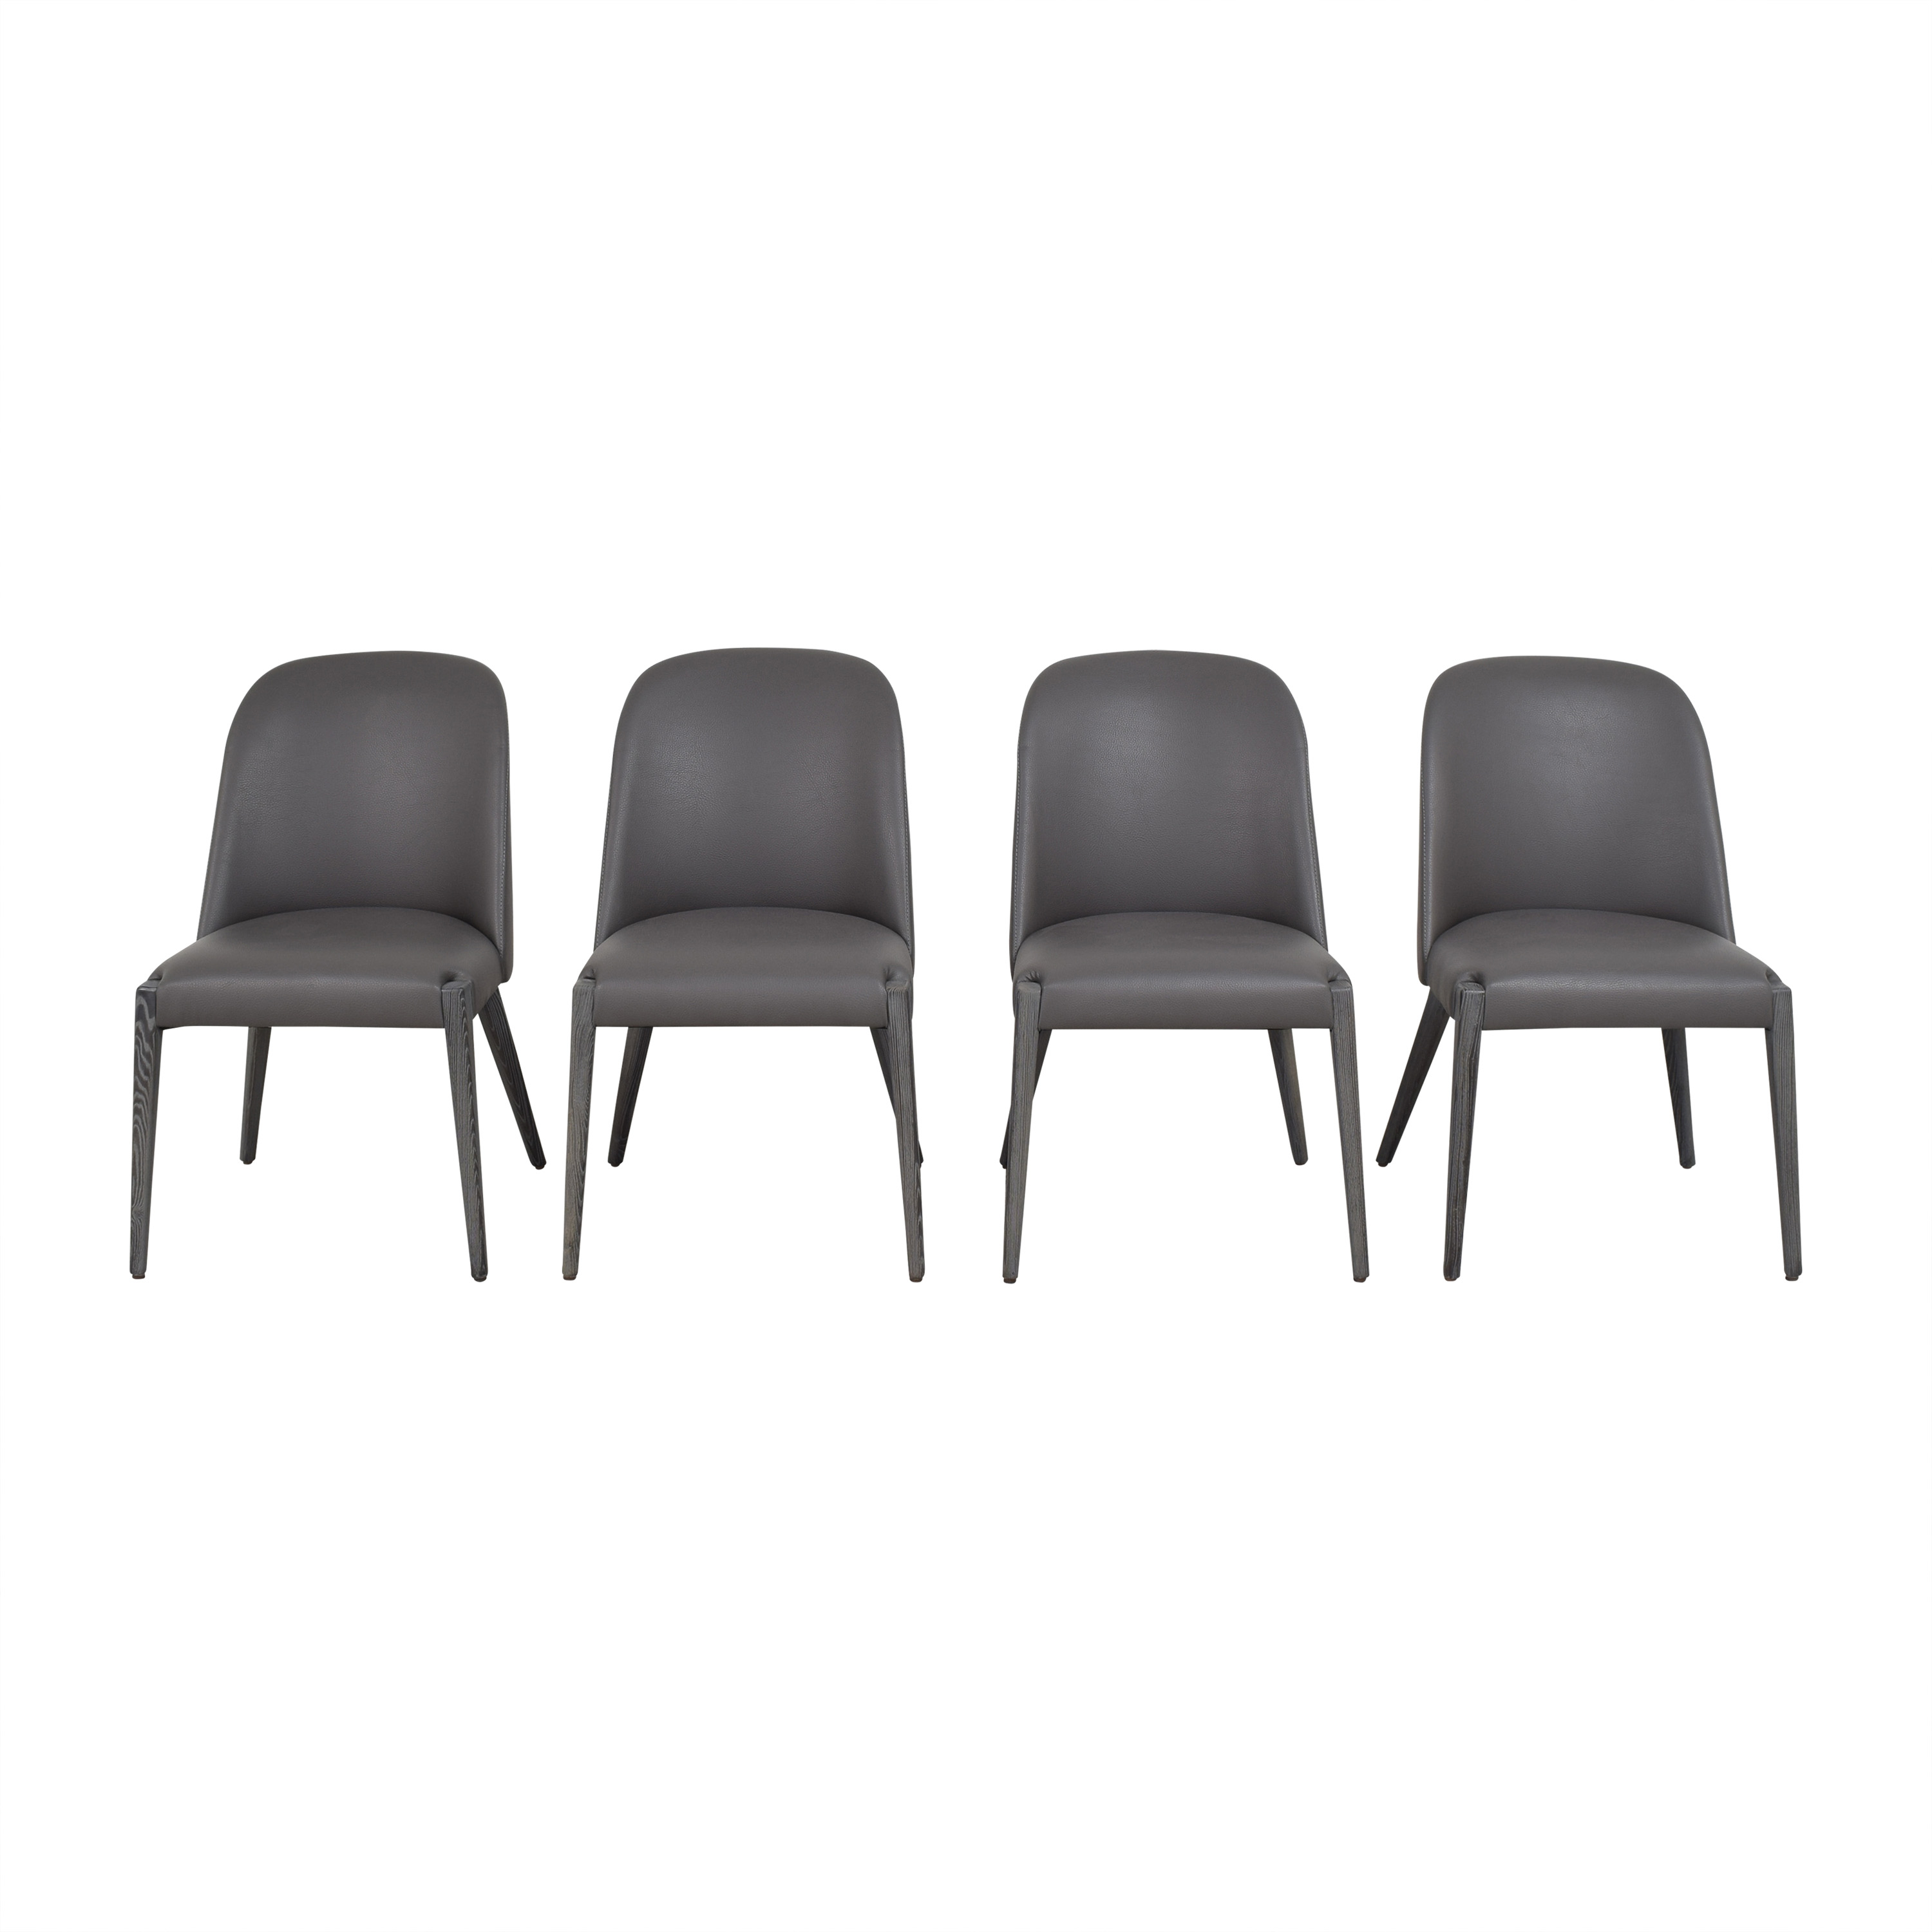 Interlude Home Interlude Home Alecia Dining Chairs second hand